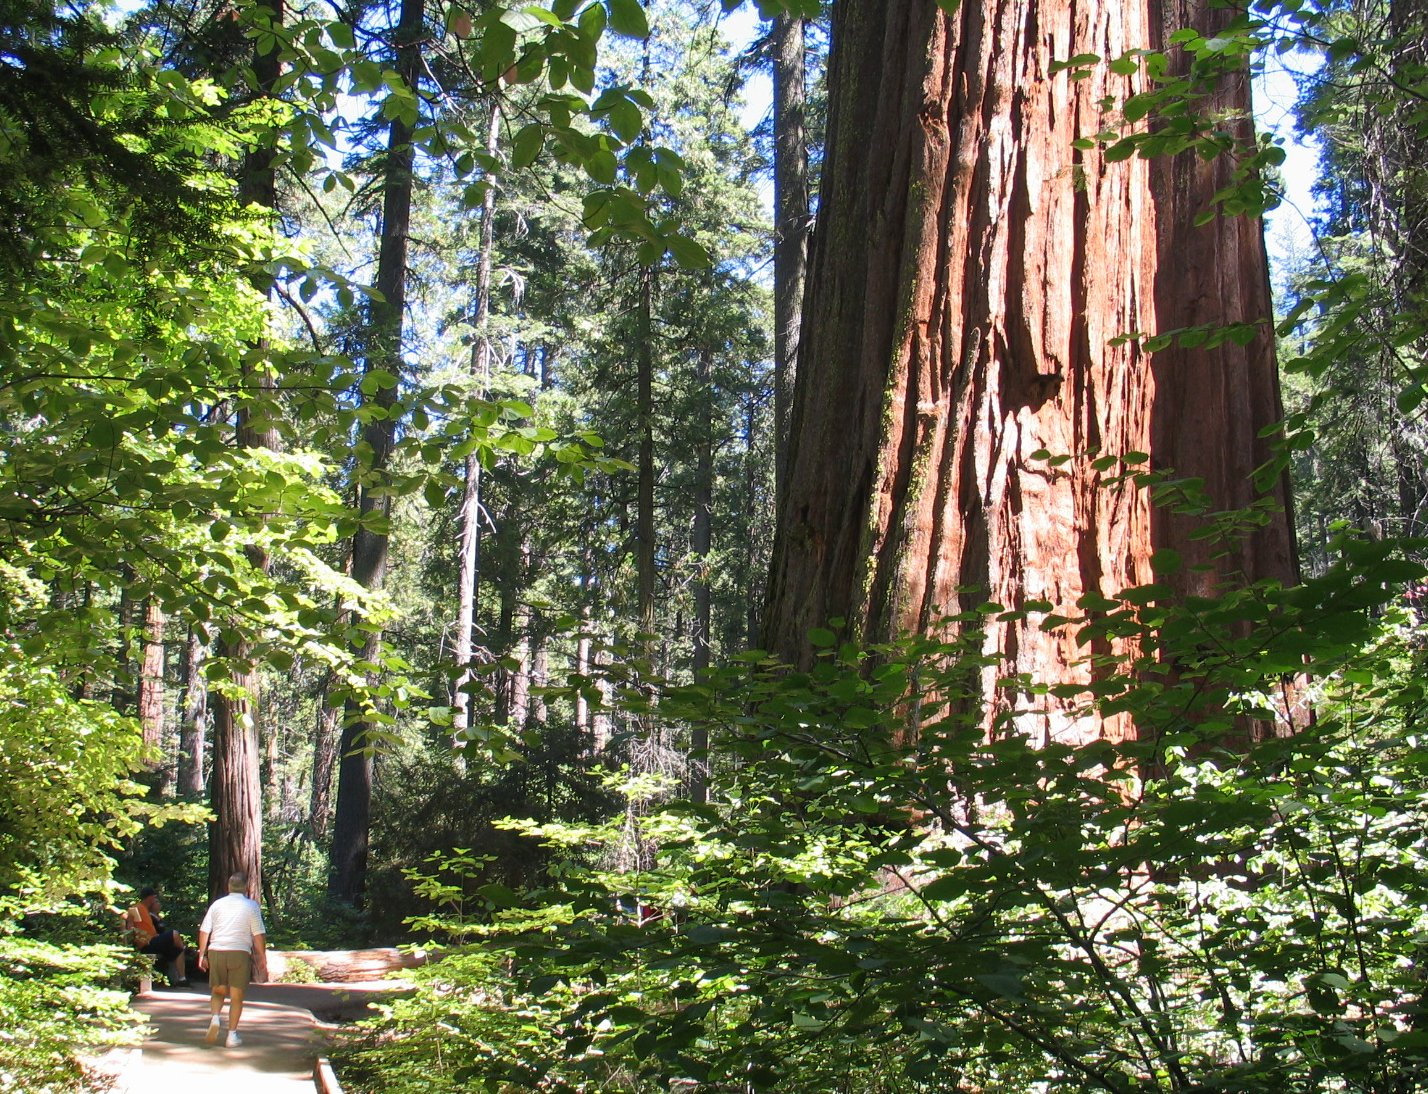 Trail past ancient Sequoiadendron giganteum (Giant Sequoia) tree.